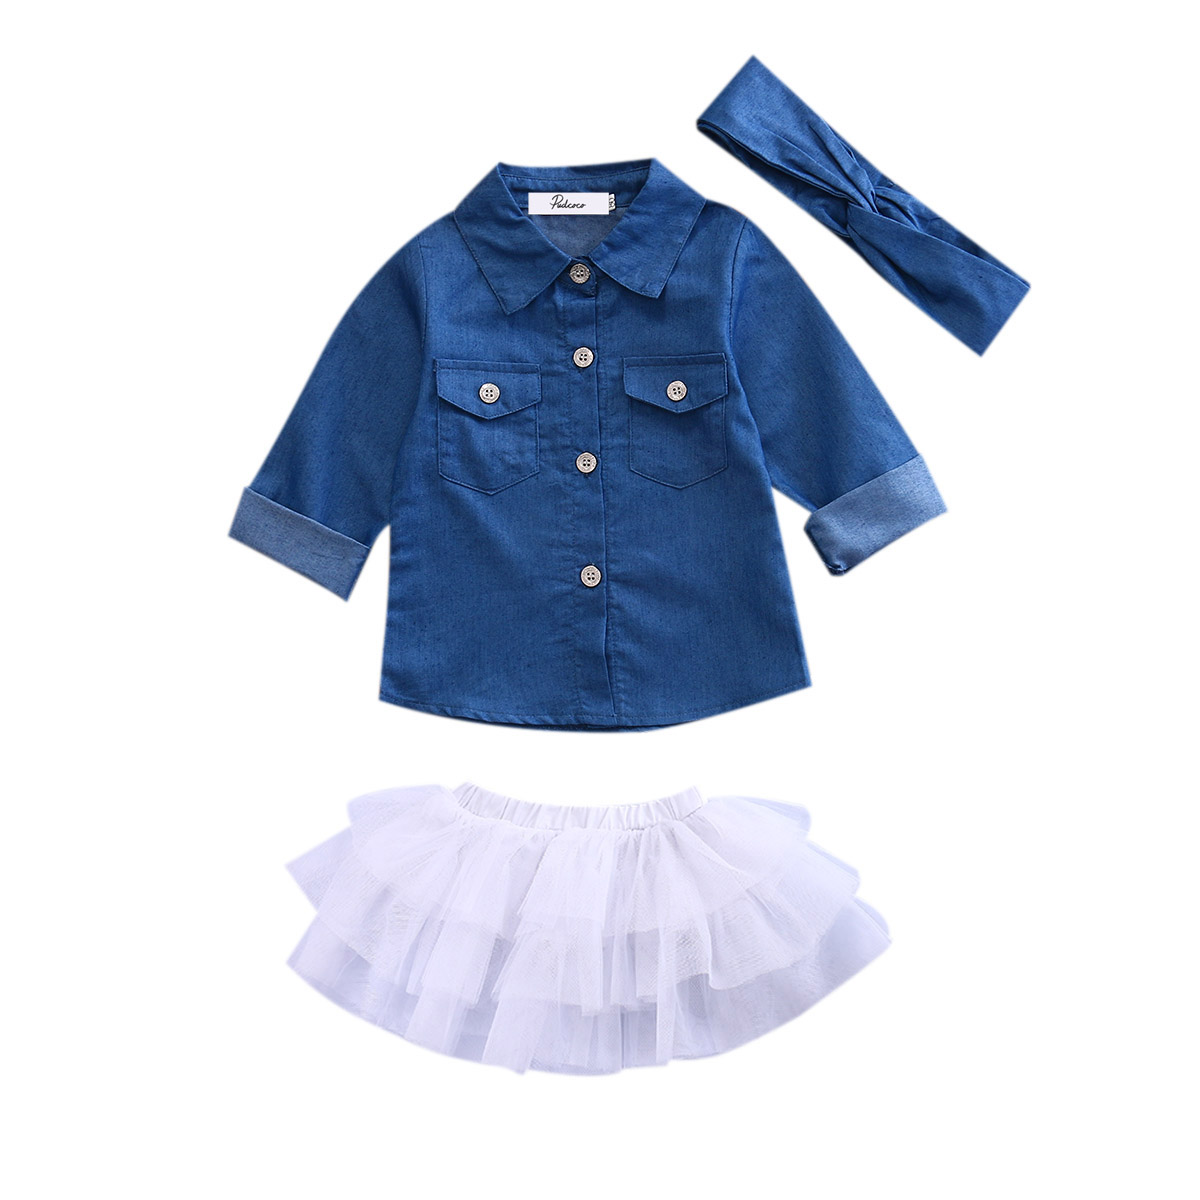 2017 estate nuovi capretti neonate del denim magliette e camicette shirt + tutu gonne dress fascia 3 pz outfit set